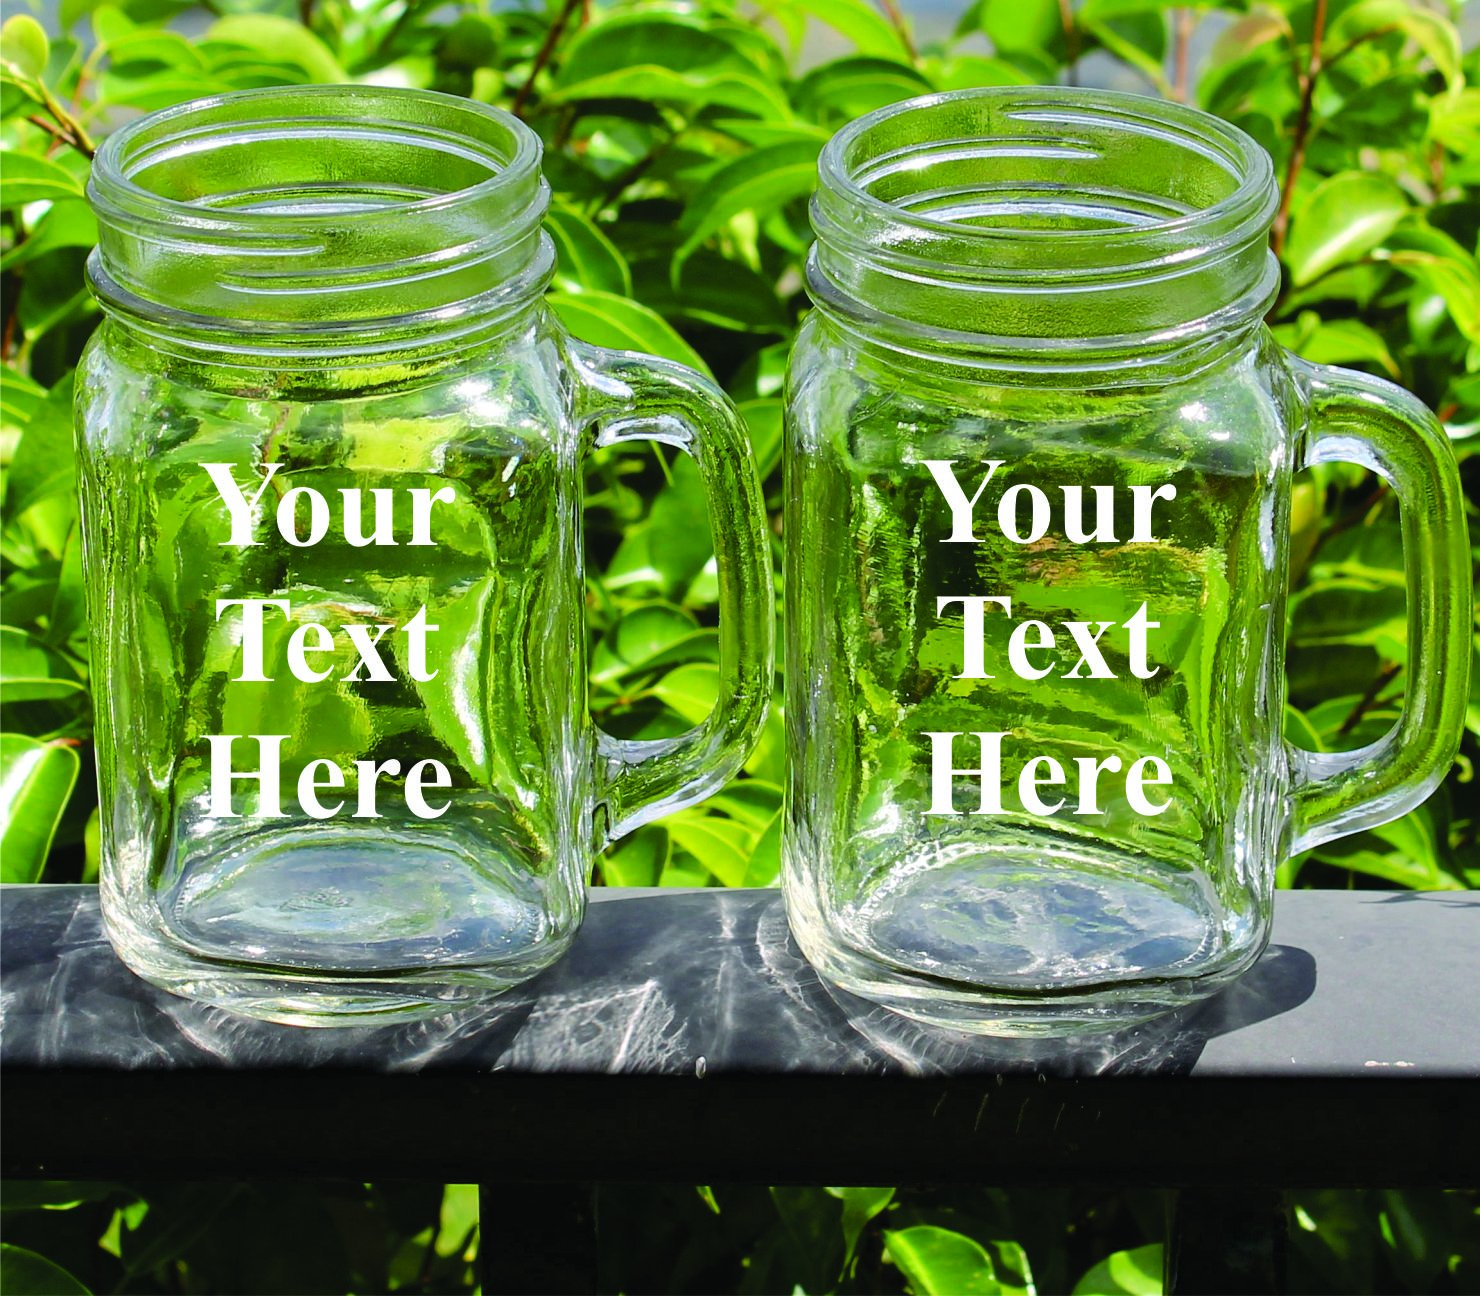 Set of 2 Personalized Mason Jar - Wedding Party Groomsmen Bridesmaid Housewarming Gifts - Custom Engraved Monogrammed Drinkware Glassware Barware Etched for Free